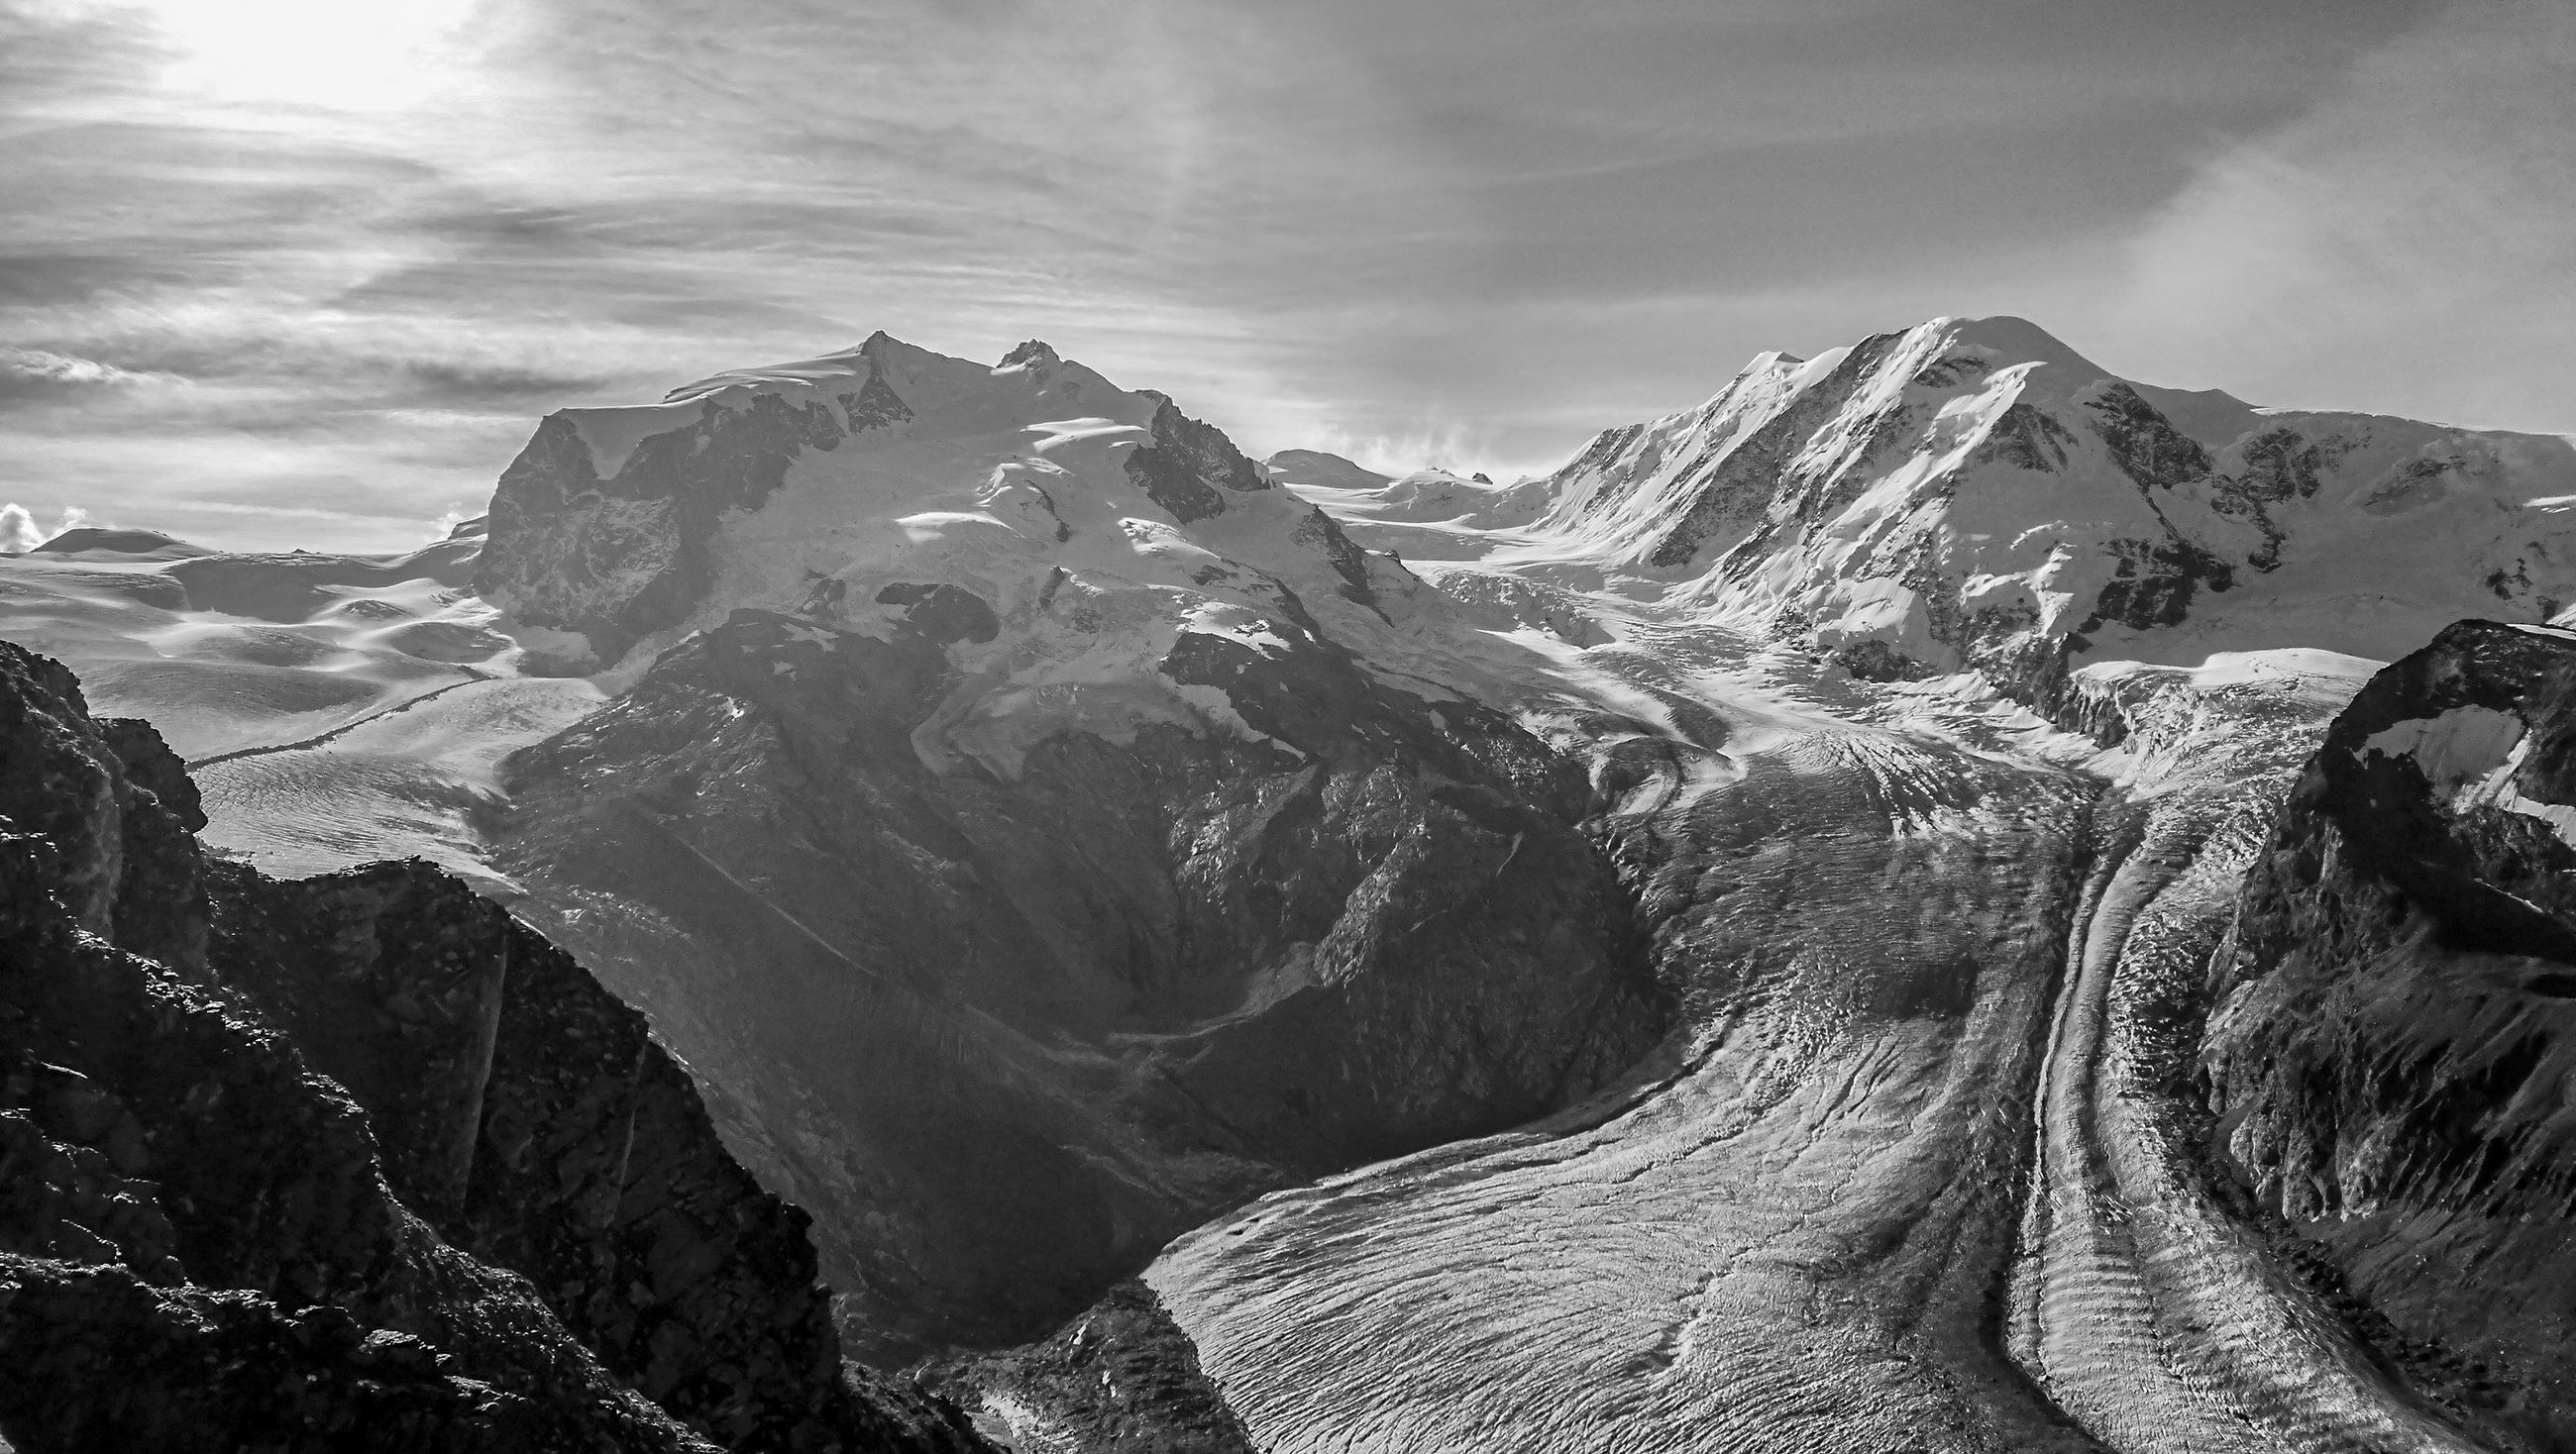 mountain, scenics - nature, environment, landscape, beauty in nature, mountain range, black and white, sky, monochrome, cloud, monochrome photography, nature, snow, travel, travel destinations, cold temperature, land, mountain peak, rock, winter, snowcapped mountain, tranquility, no people, non-urban scene, outdoors, tranquil scene, extreme terrain, tourism, activity, idyllic, dramatic landscape, day, adventure, water